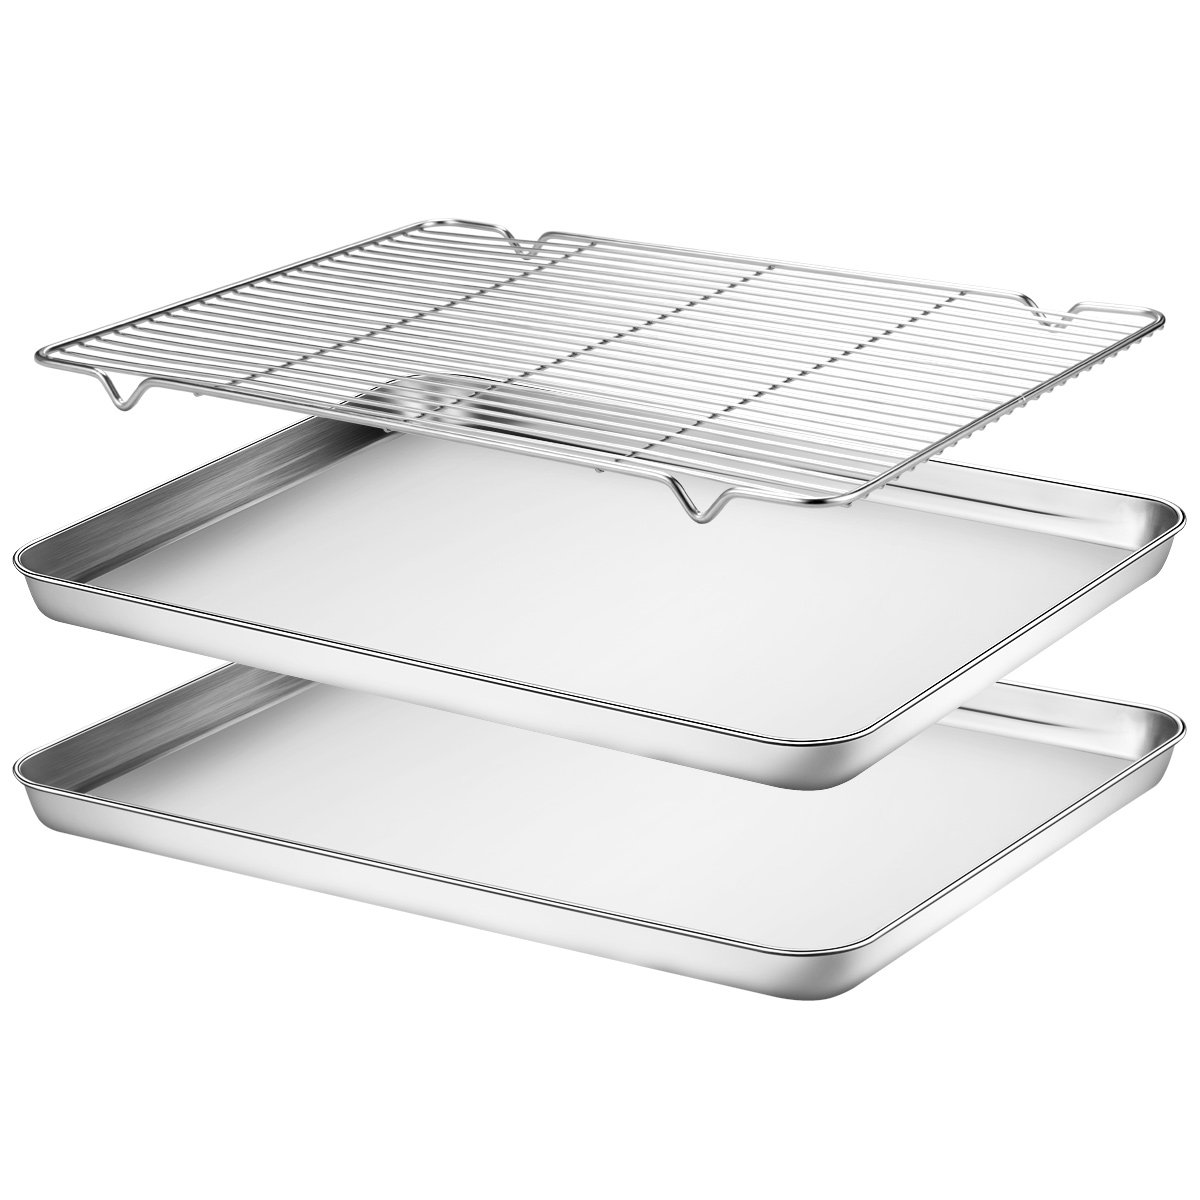 Baking Sheets 2 Pieces with A Rack, HKJ Chef Cookie Sheets and Nonstick Cooling Rack & Stainless Steel Baking Pans & Toaster Oven Tray Pan, Rectangle Size 16 x 12 x 1 inch & Non Toxic